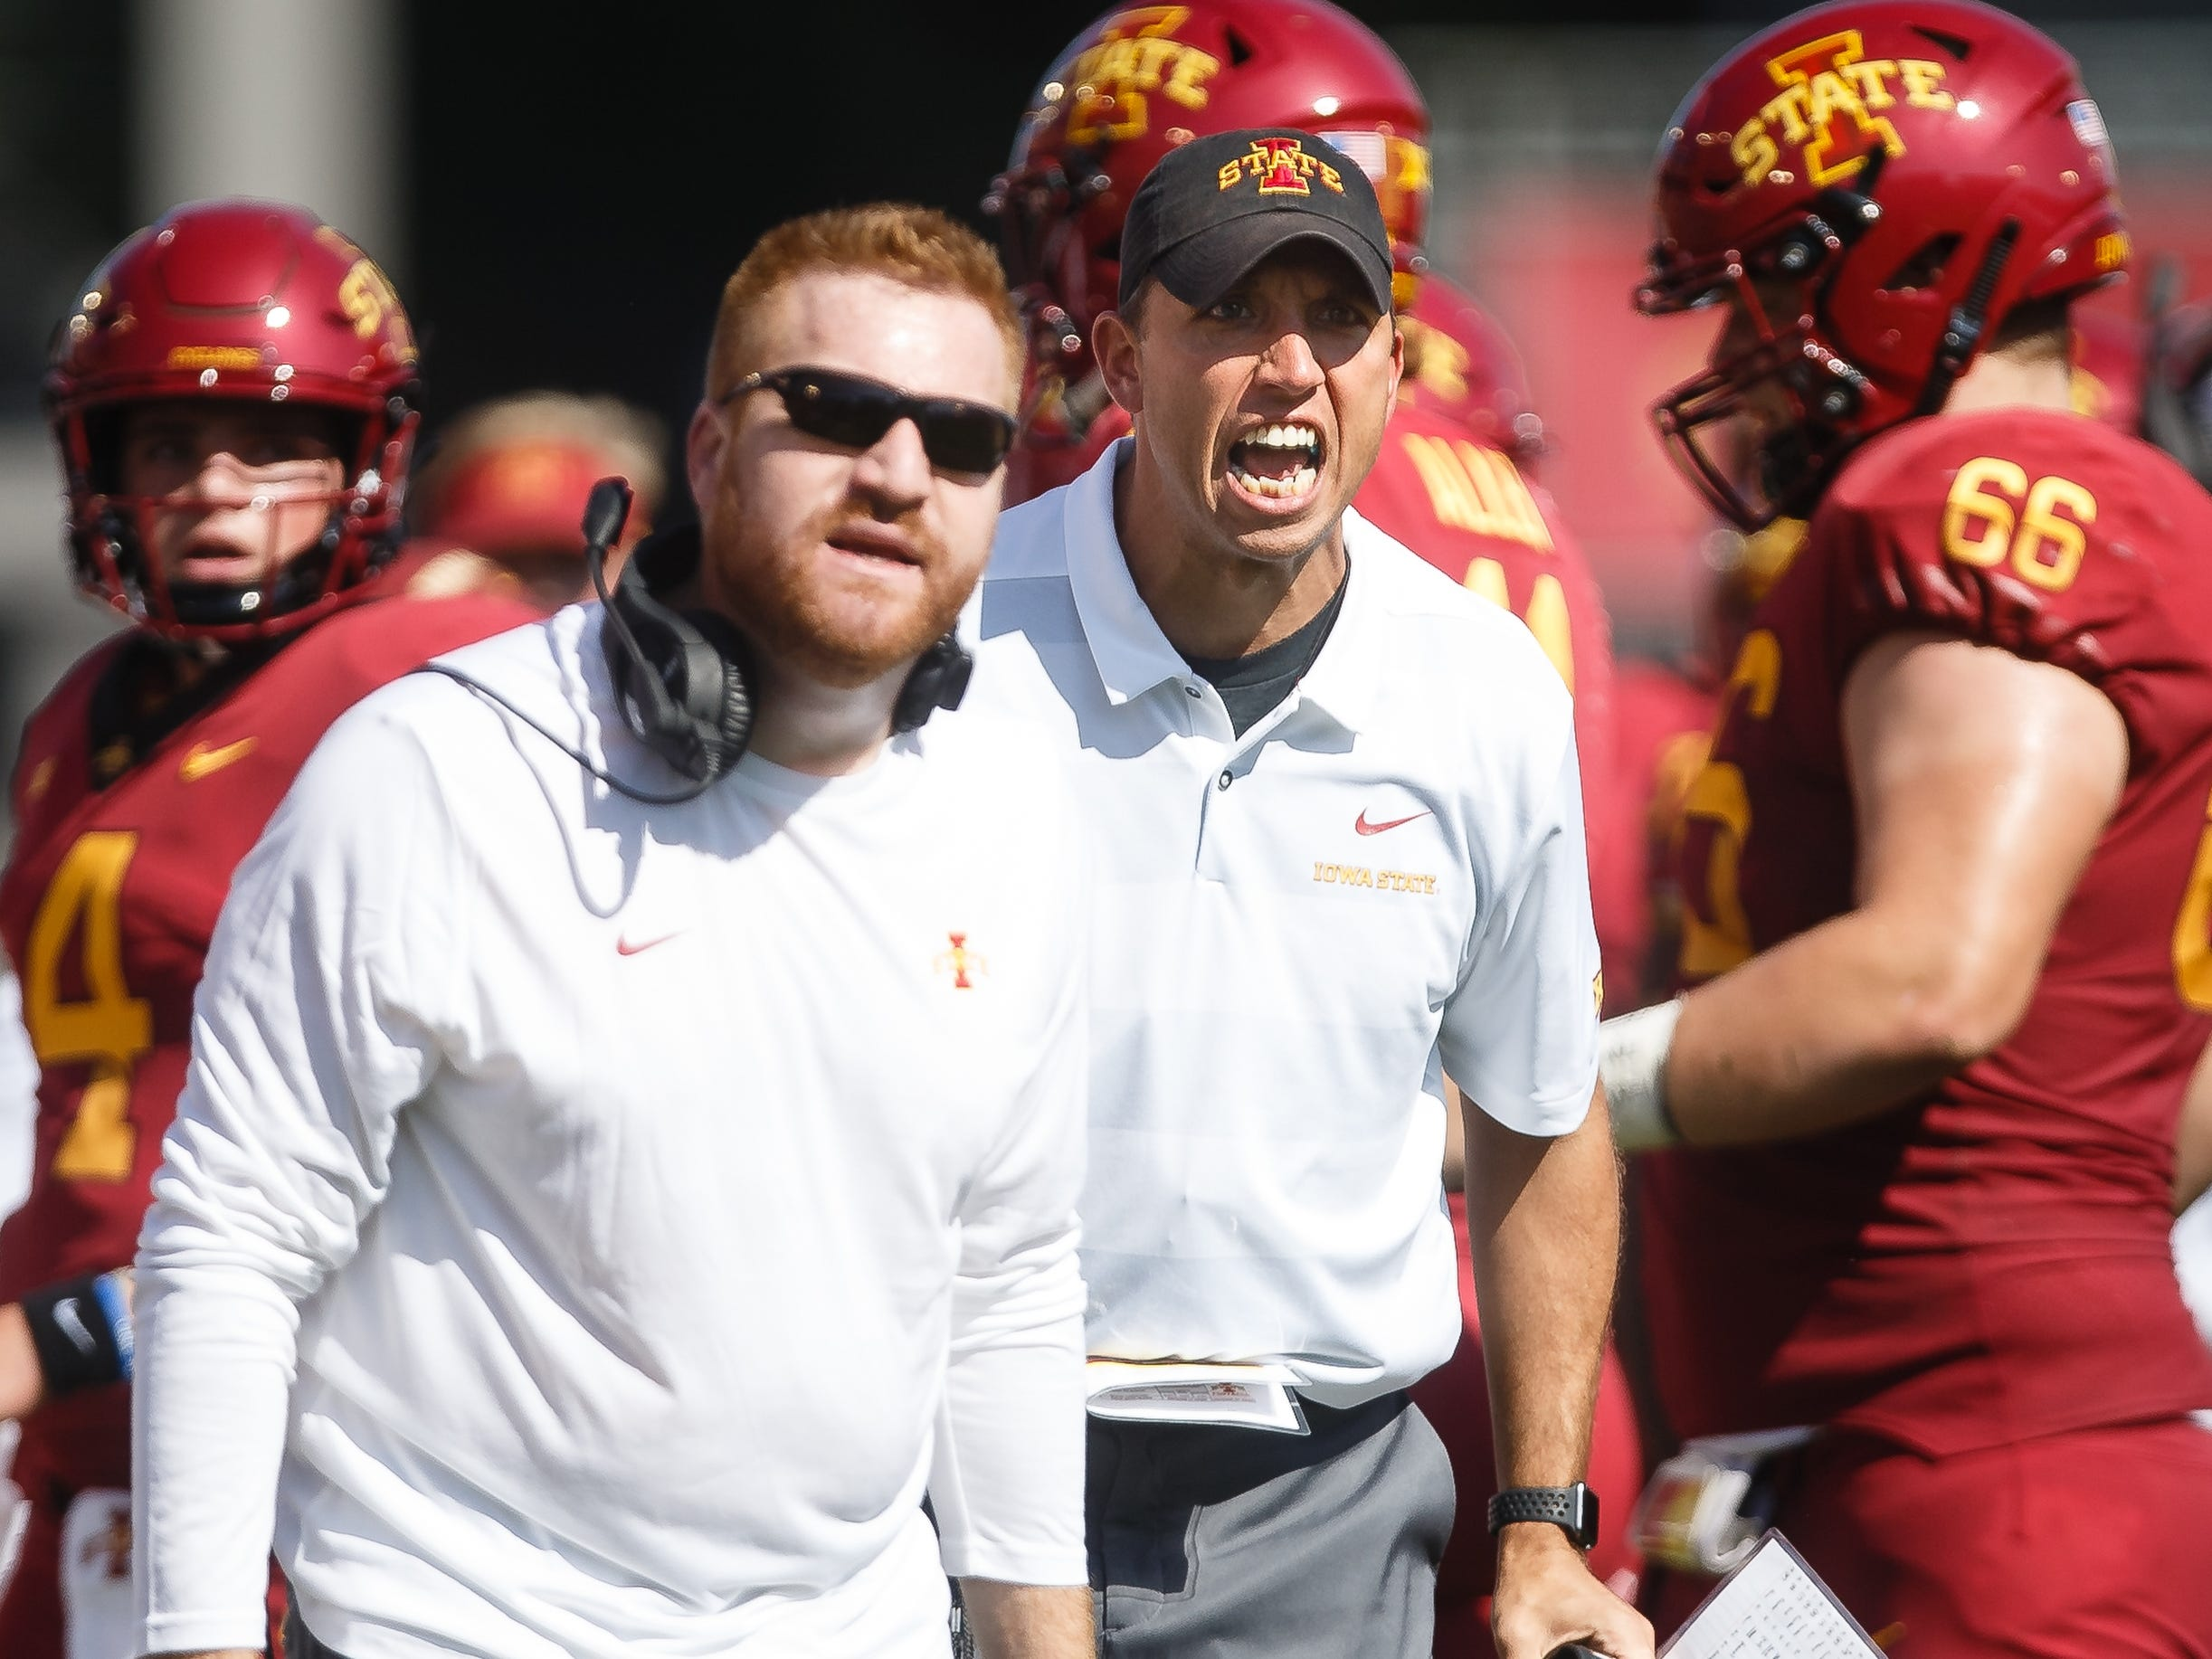 Iowa State coaches including head coach Matt Campbel contest a call during their football game against Oklahoma at Jack Trice Stadium on Saturday, Sept. 15, 2018 in Ames. Oklahoma would go on to win 37-27.